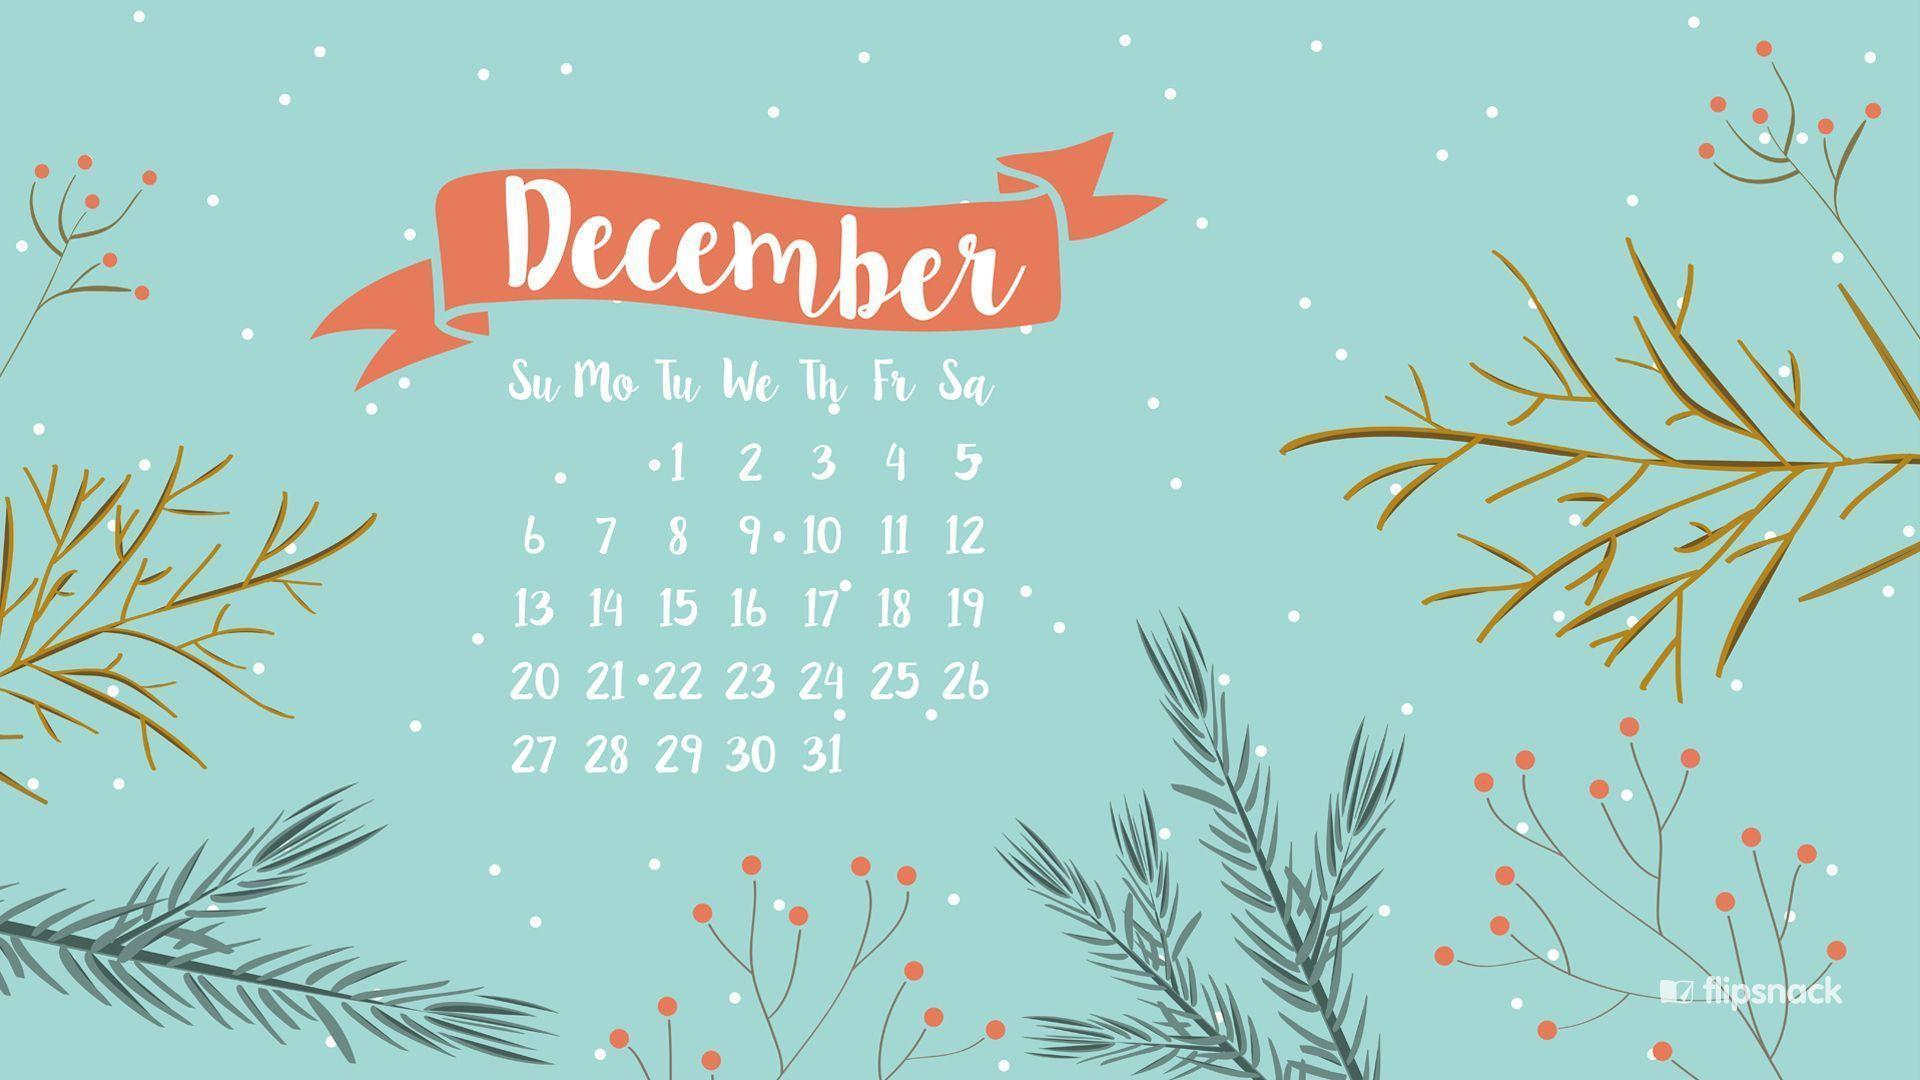 Calendar Wallpaper Pc : Desktop wallpapers calendar december wallpaper cave